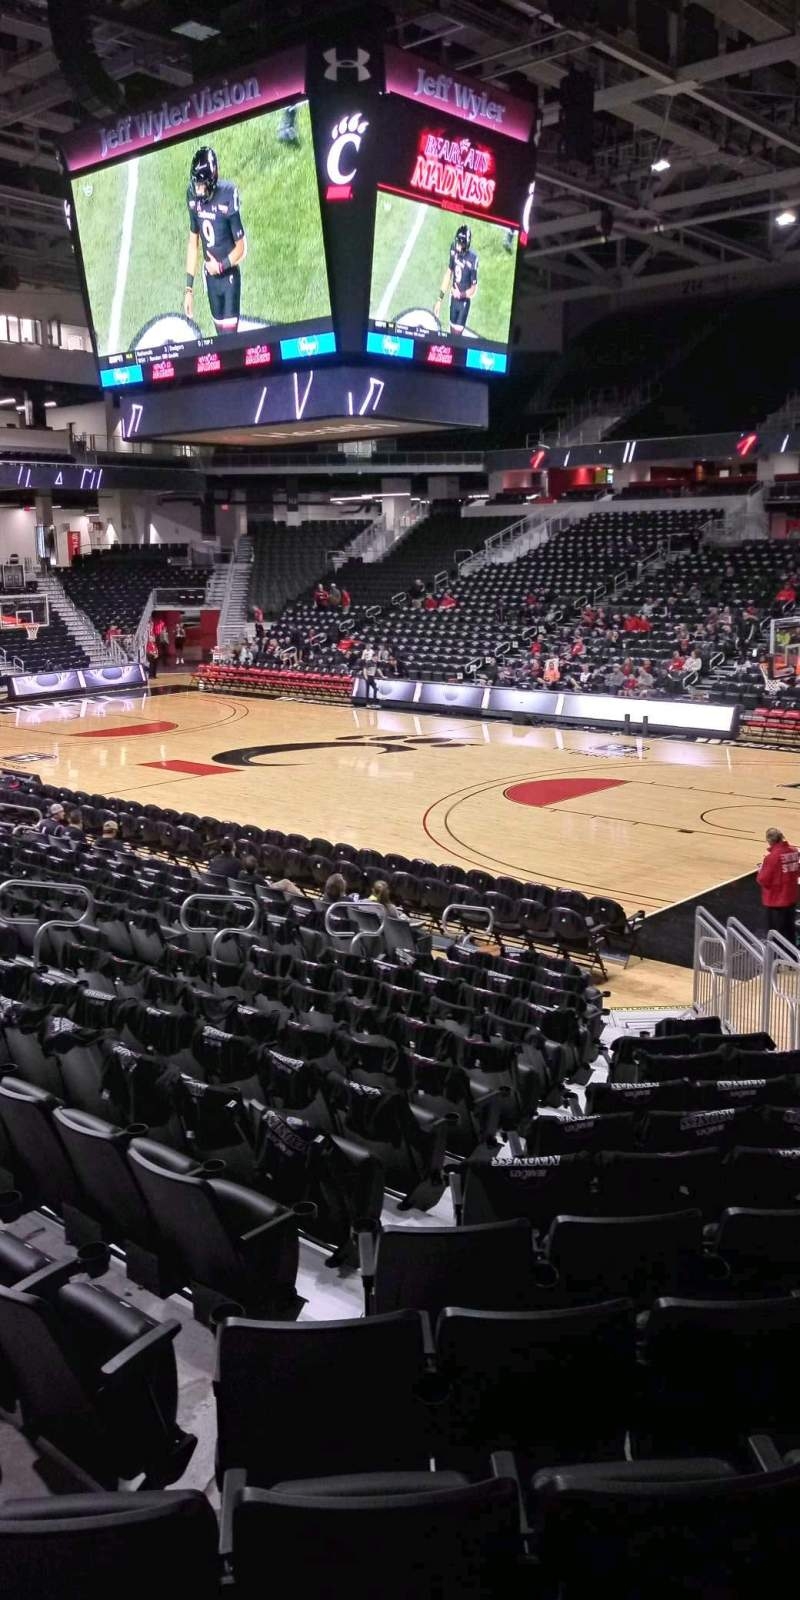 Seating view for Fifth Third Arena Section 101 Row 15 Seat 6